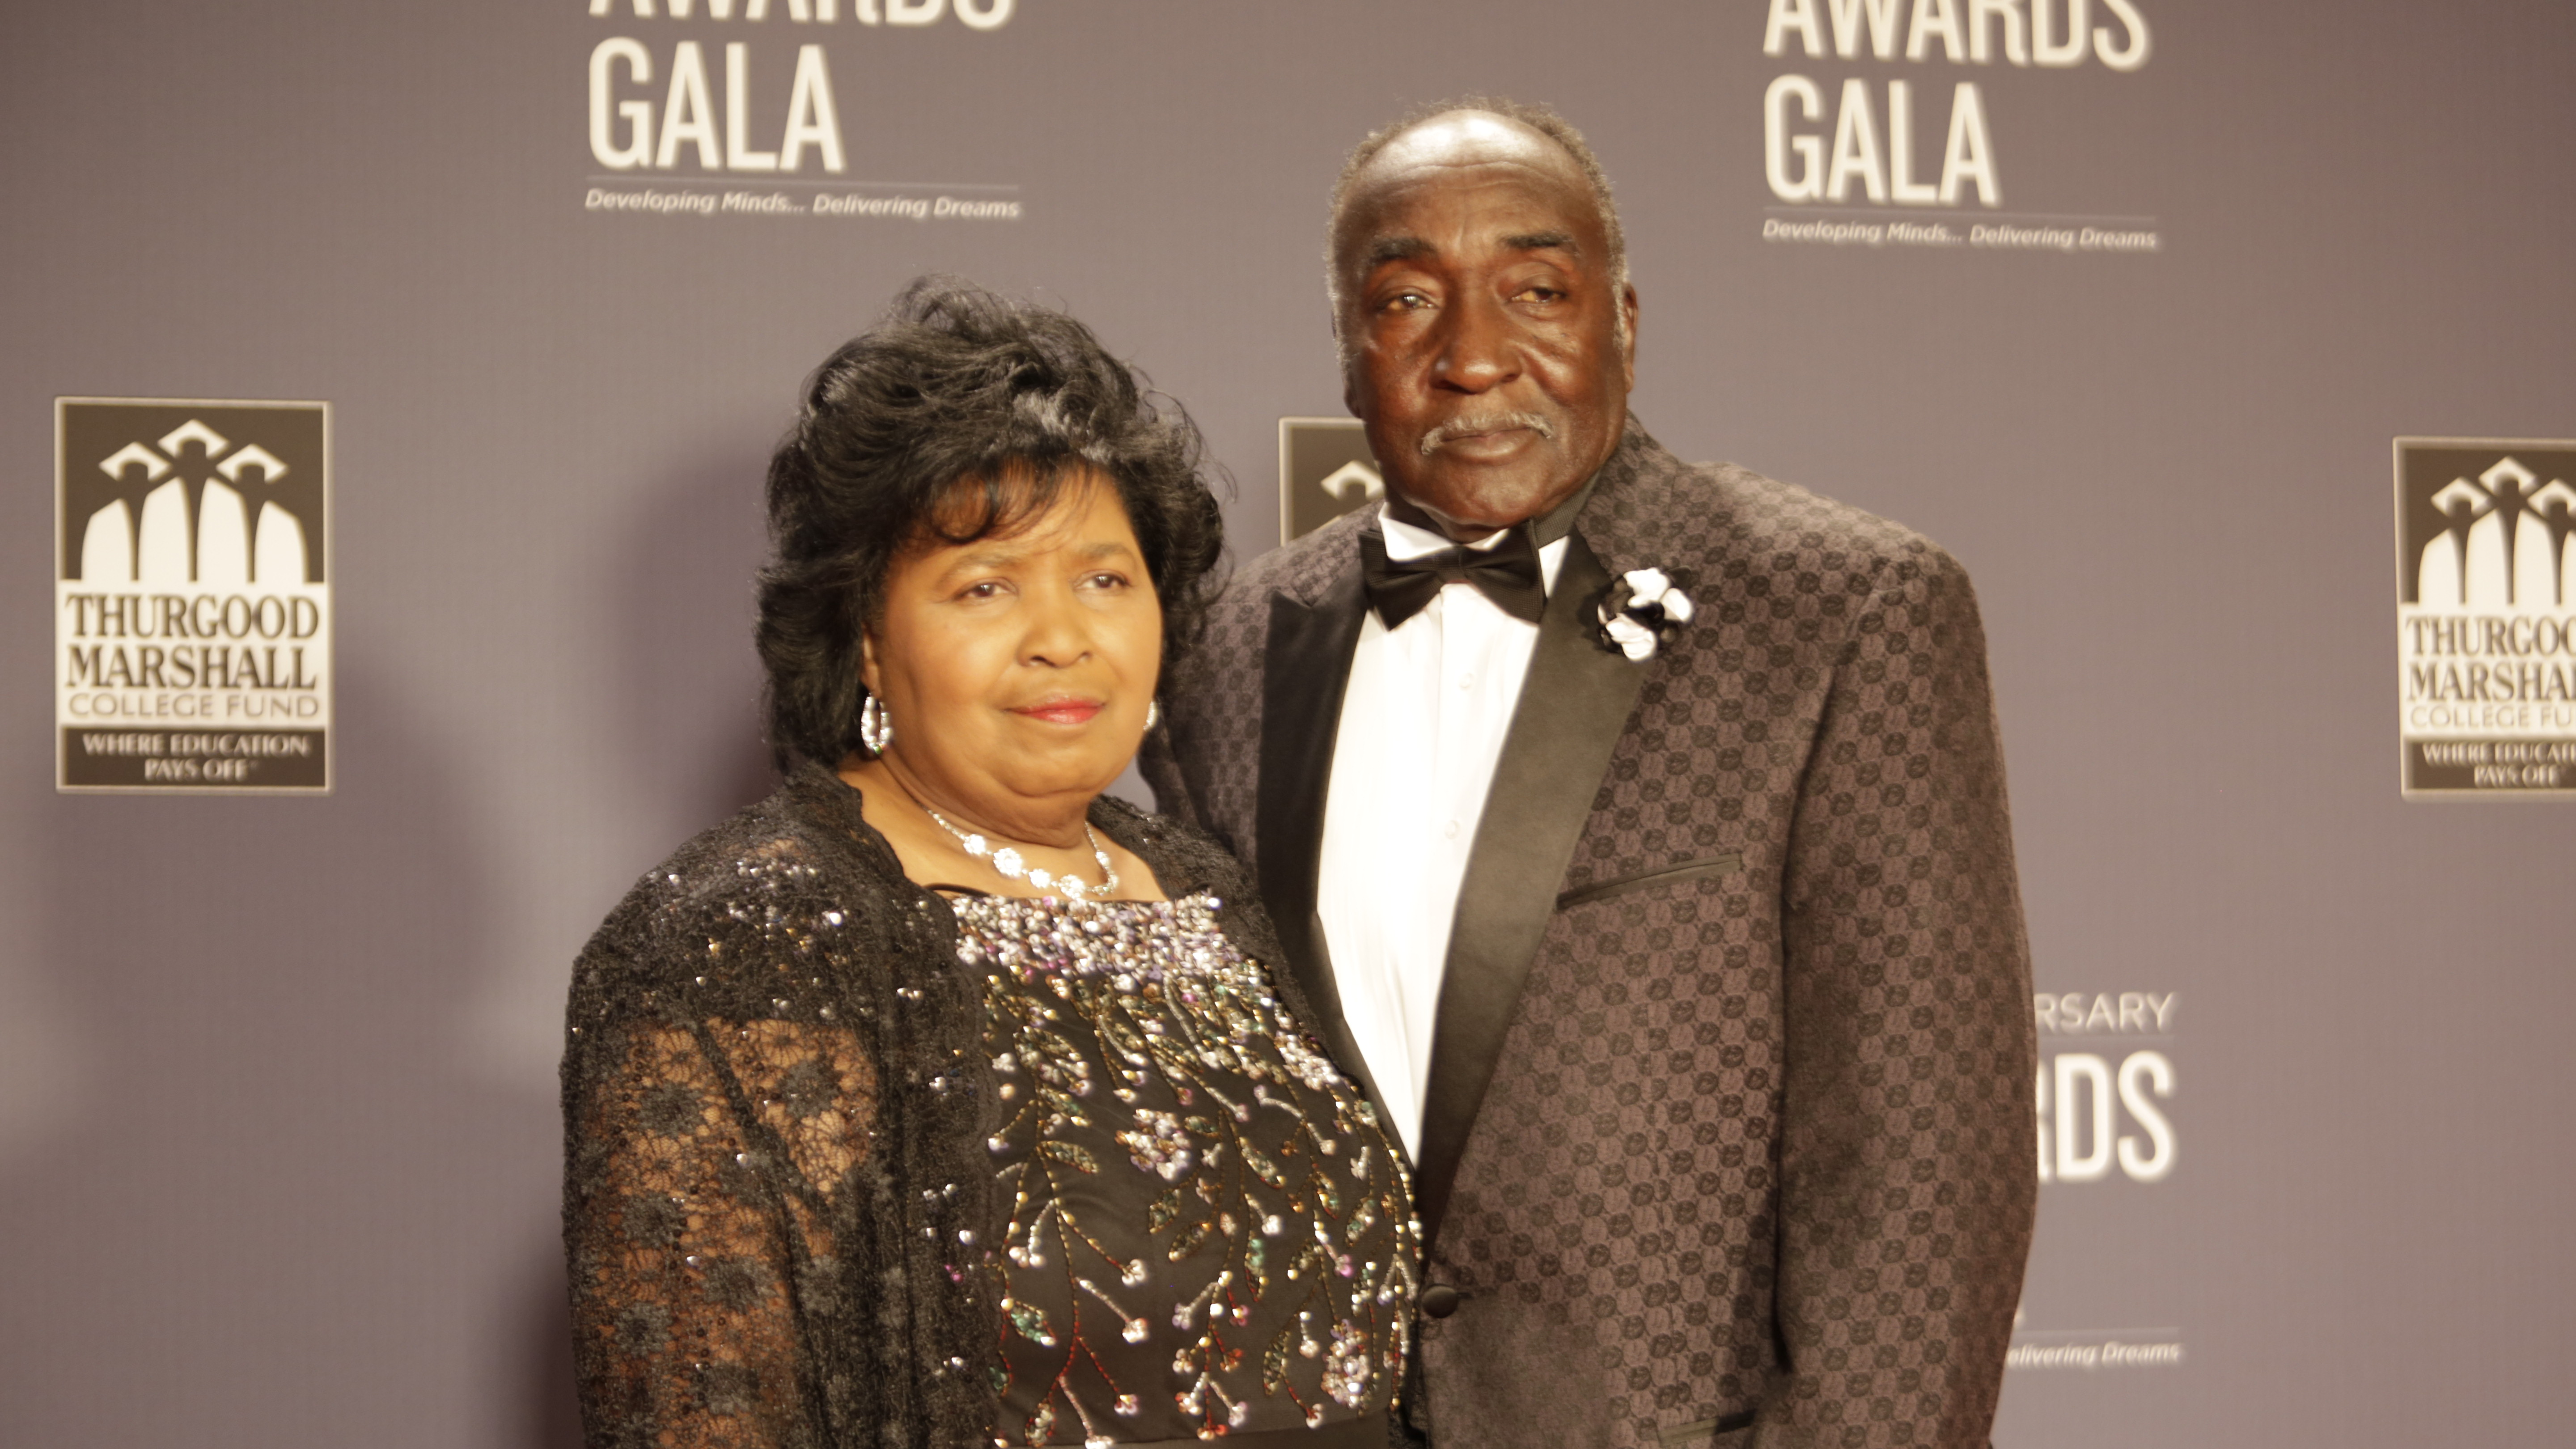 Majic At The Thurgood Marshall College Fund Gala